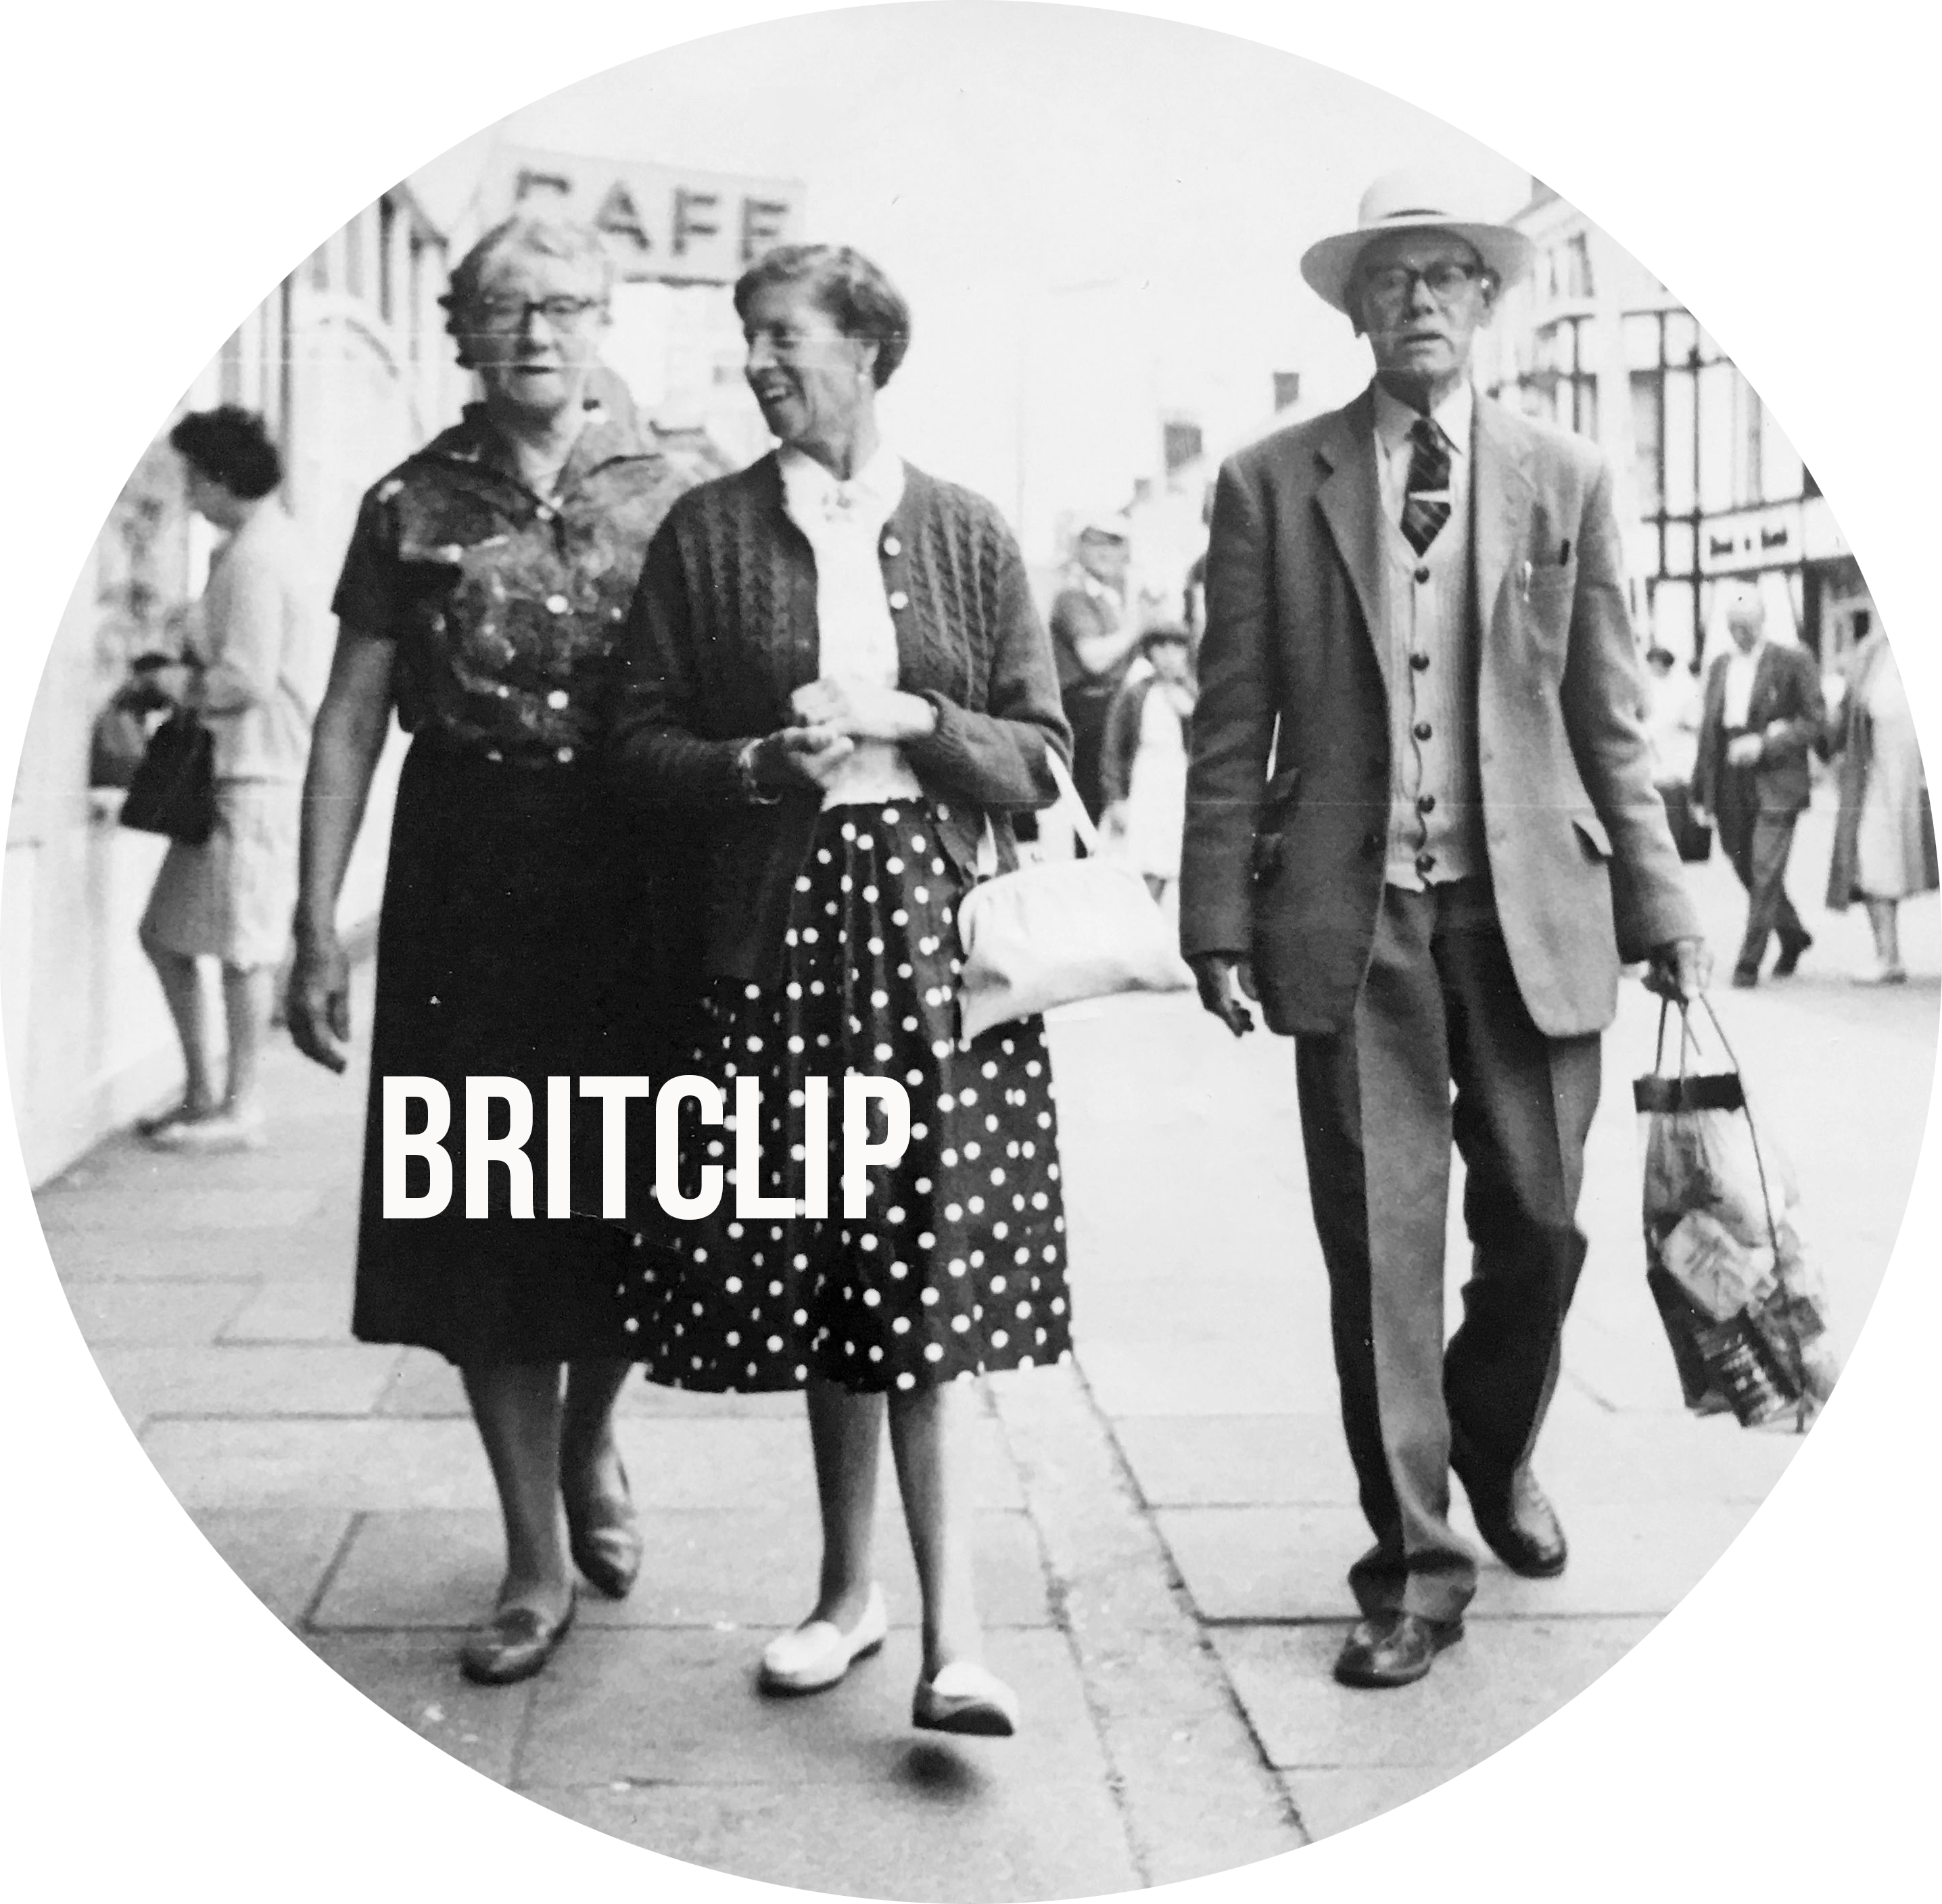 britclip.co.uk